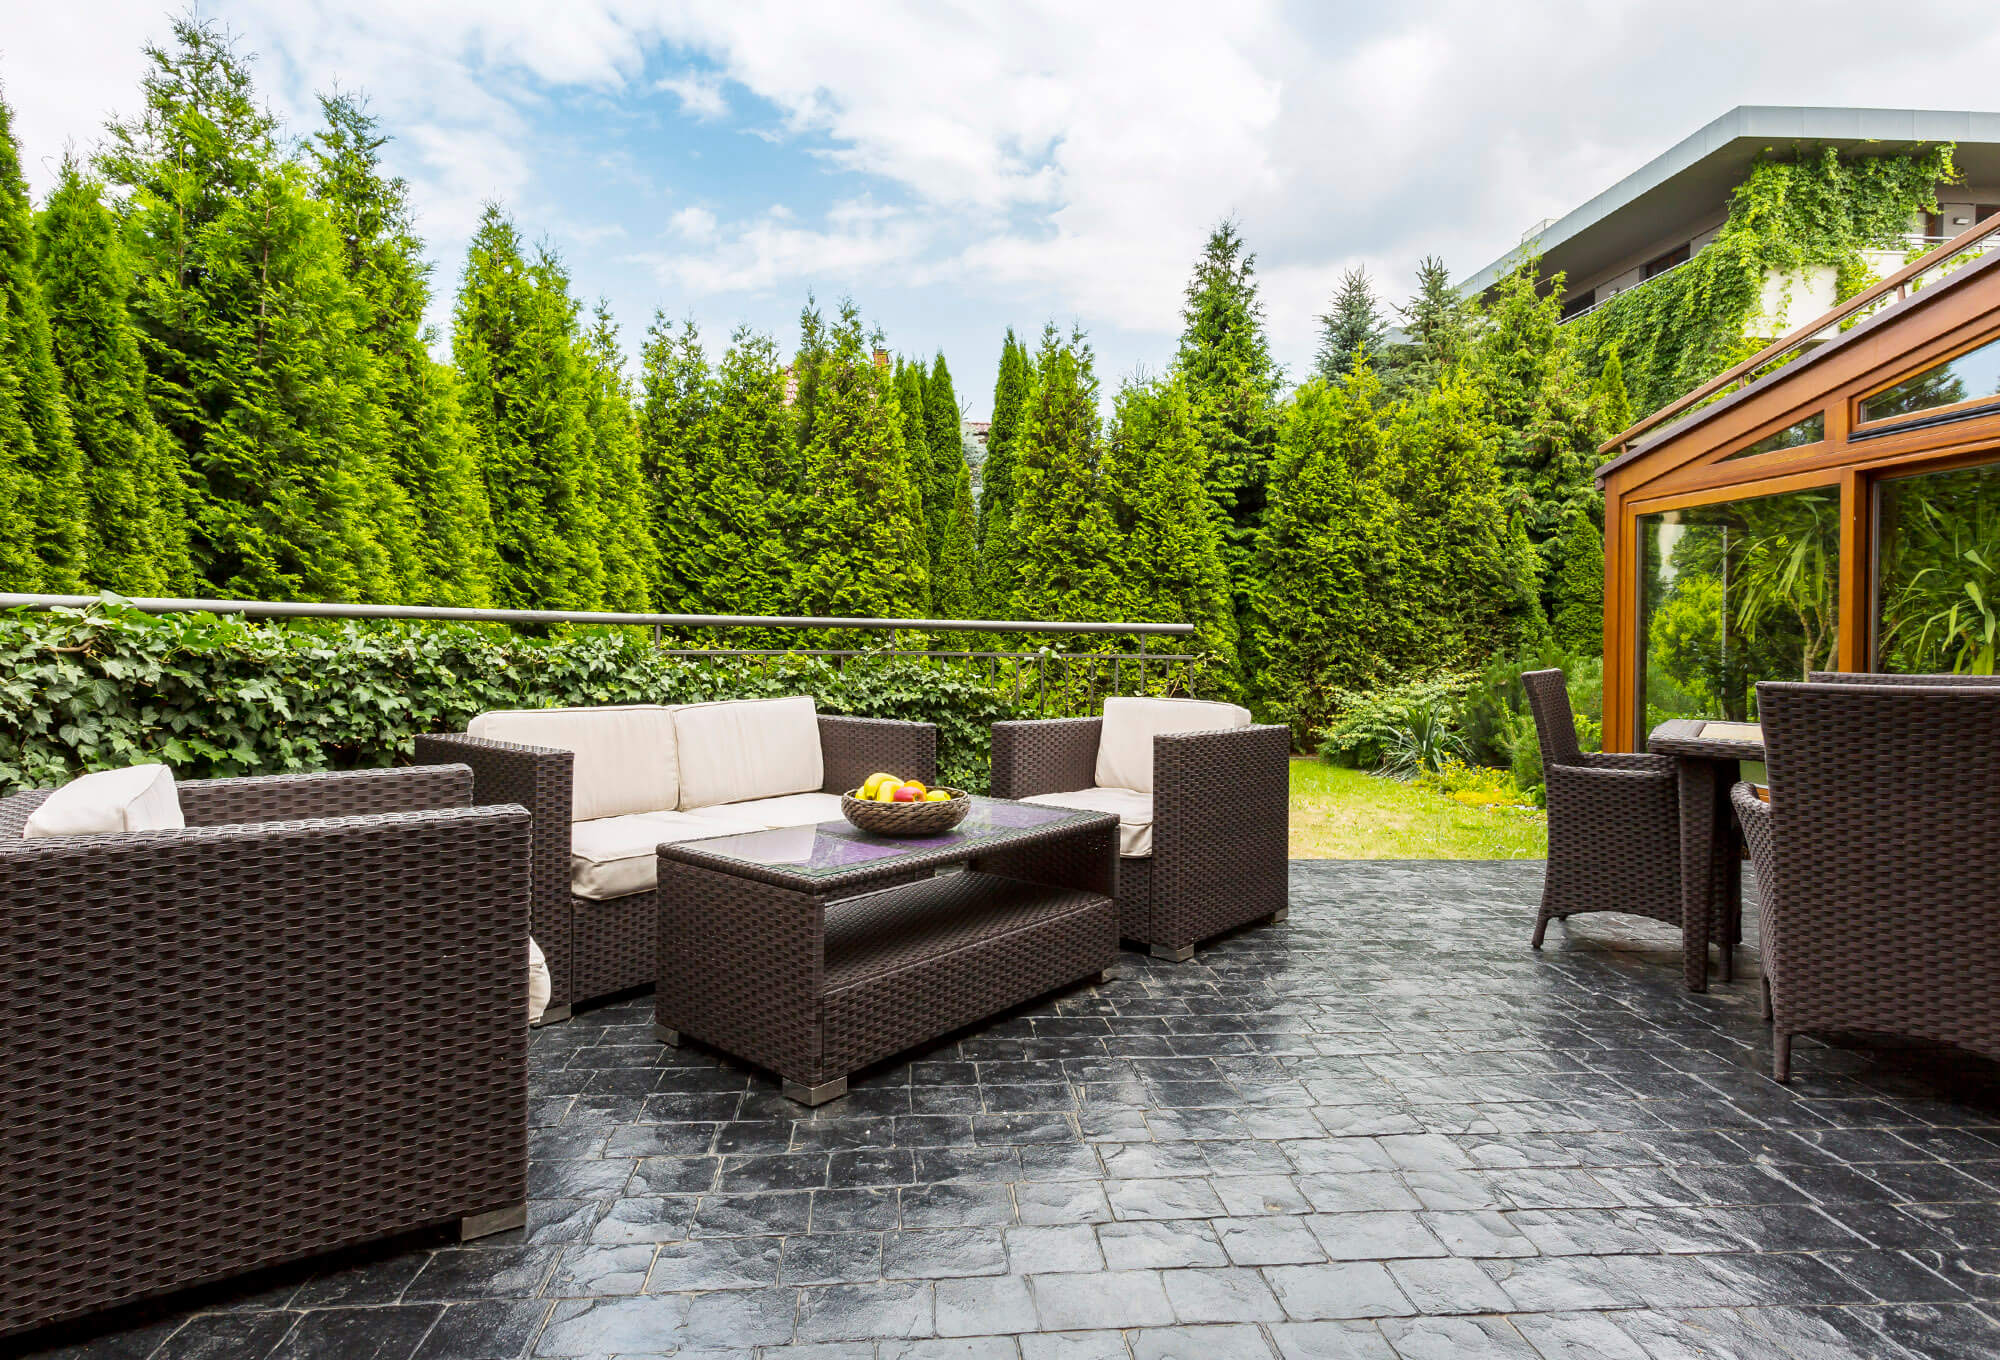 Back patio with black tile and brown and tan whicker furniture surrounded by beautiful pine trees